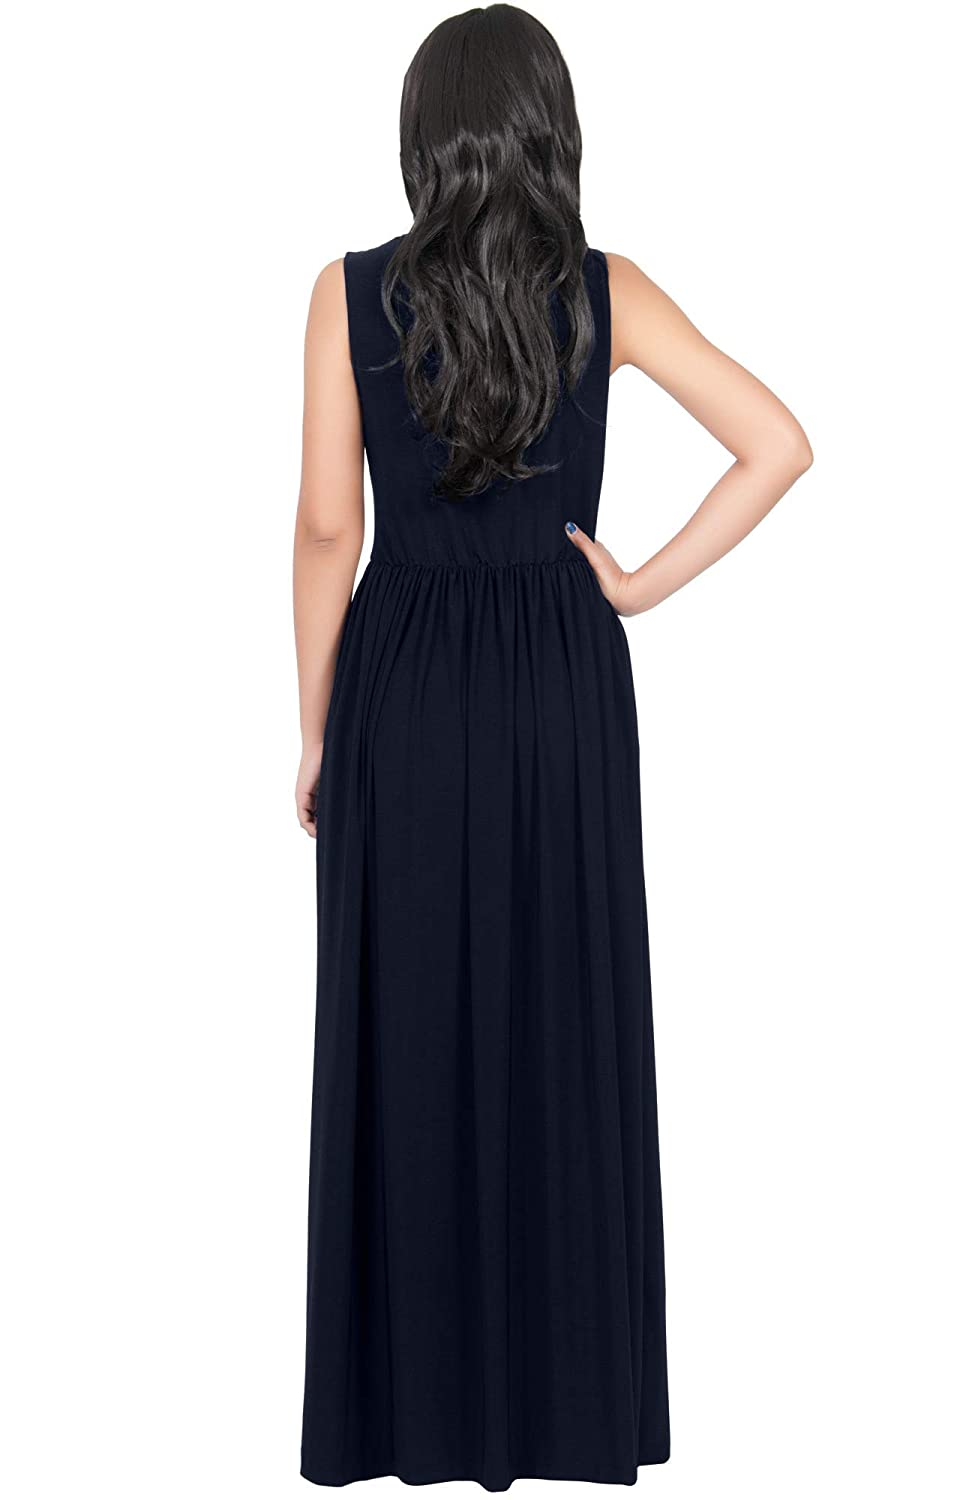 KOH KOH Wrap Designer Sleeveless Evening Party Prom Gown